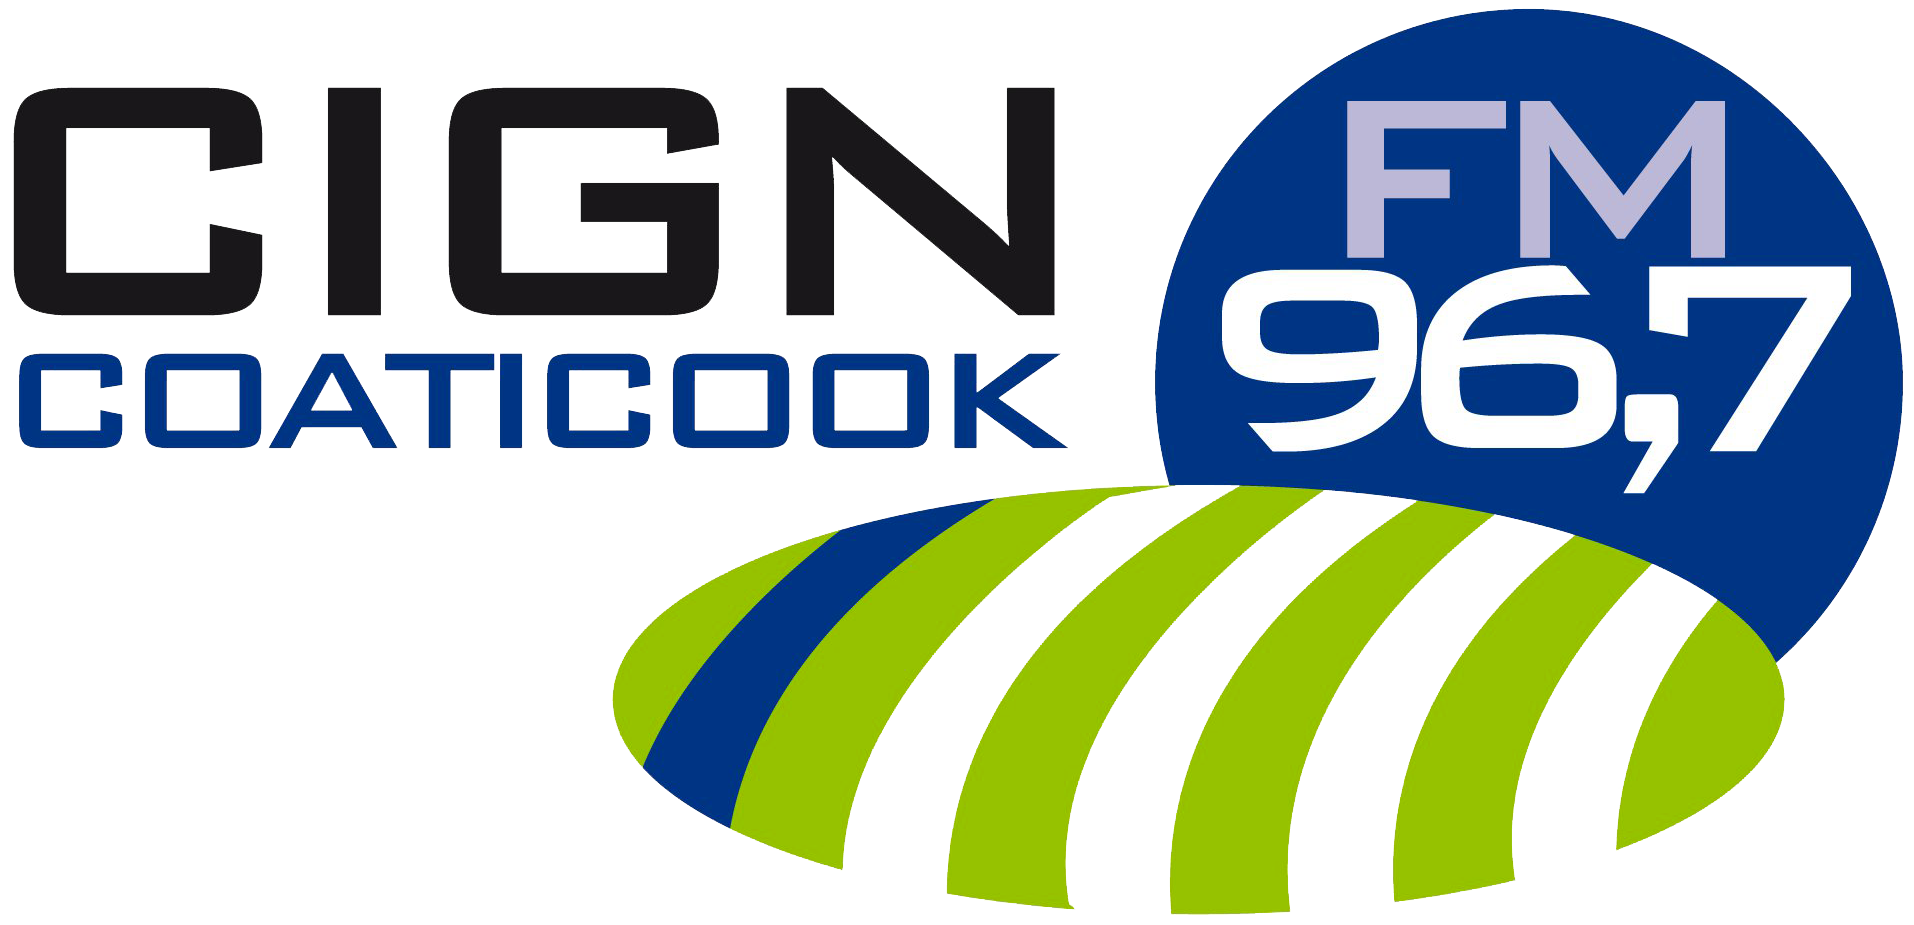 CIGN Coaticook 96,7 fm - Partner of The Pavillon des arts et de la culture de Coaticook